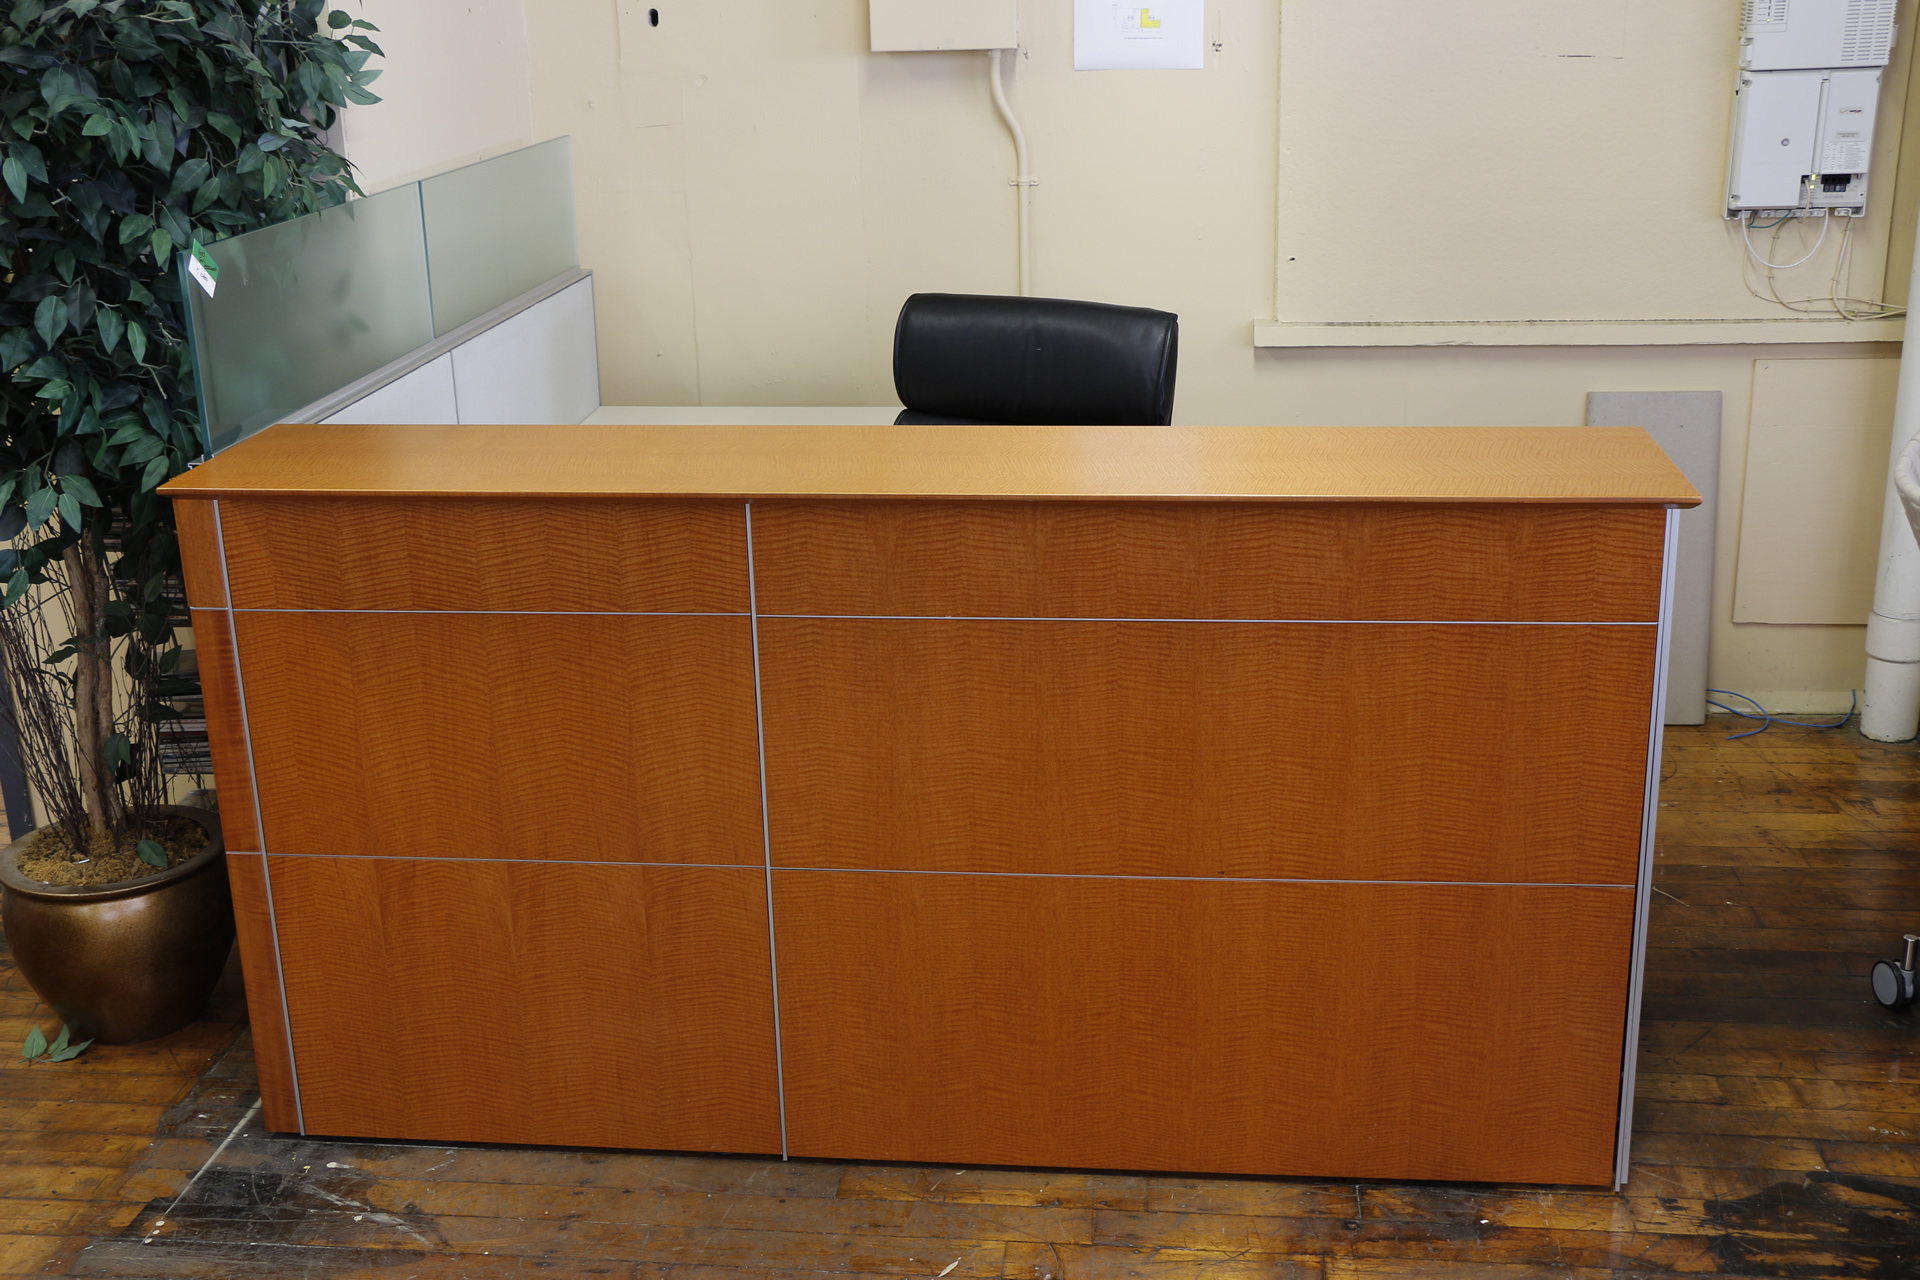 peartreeofficefurniture_peartreeofficefurniture_mg_4193.jpg